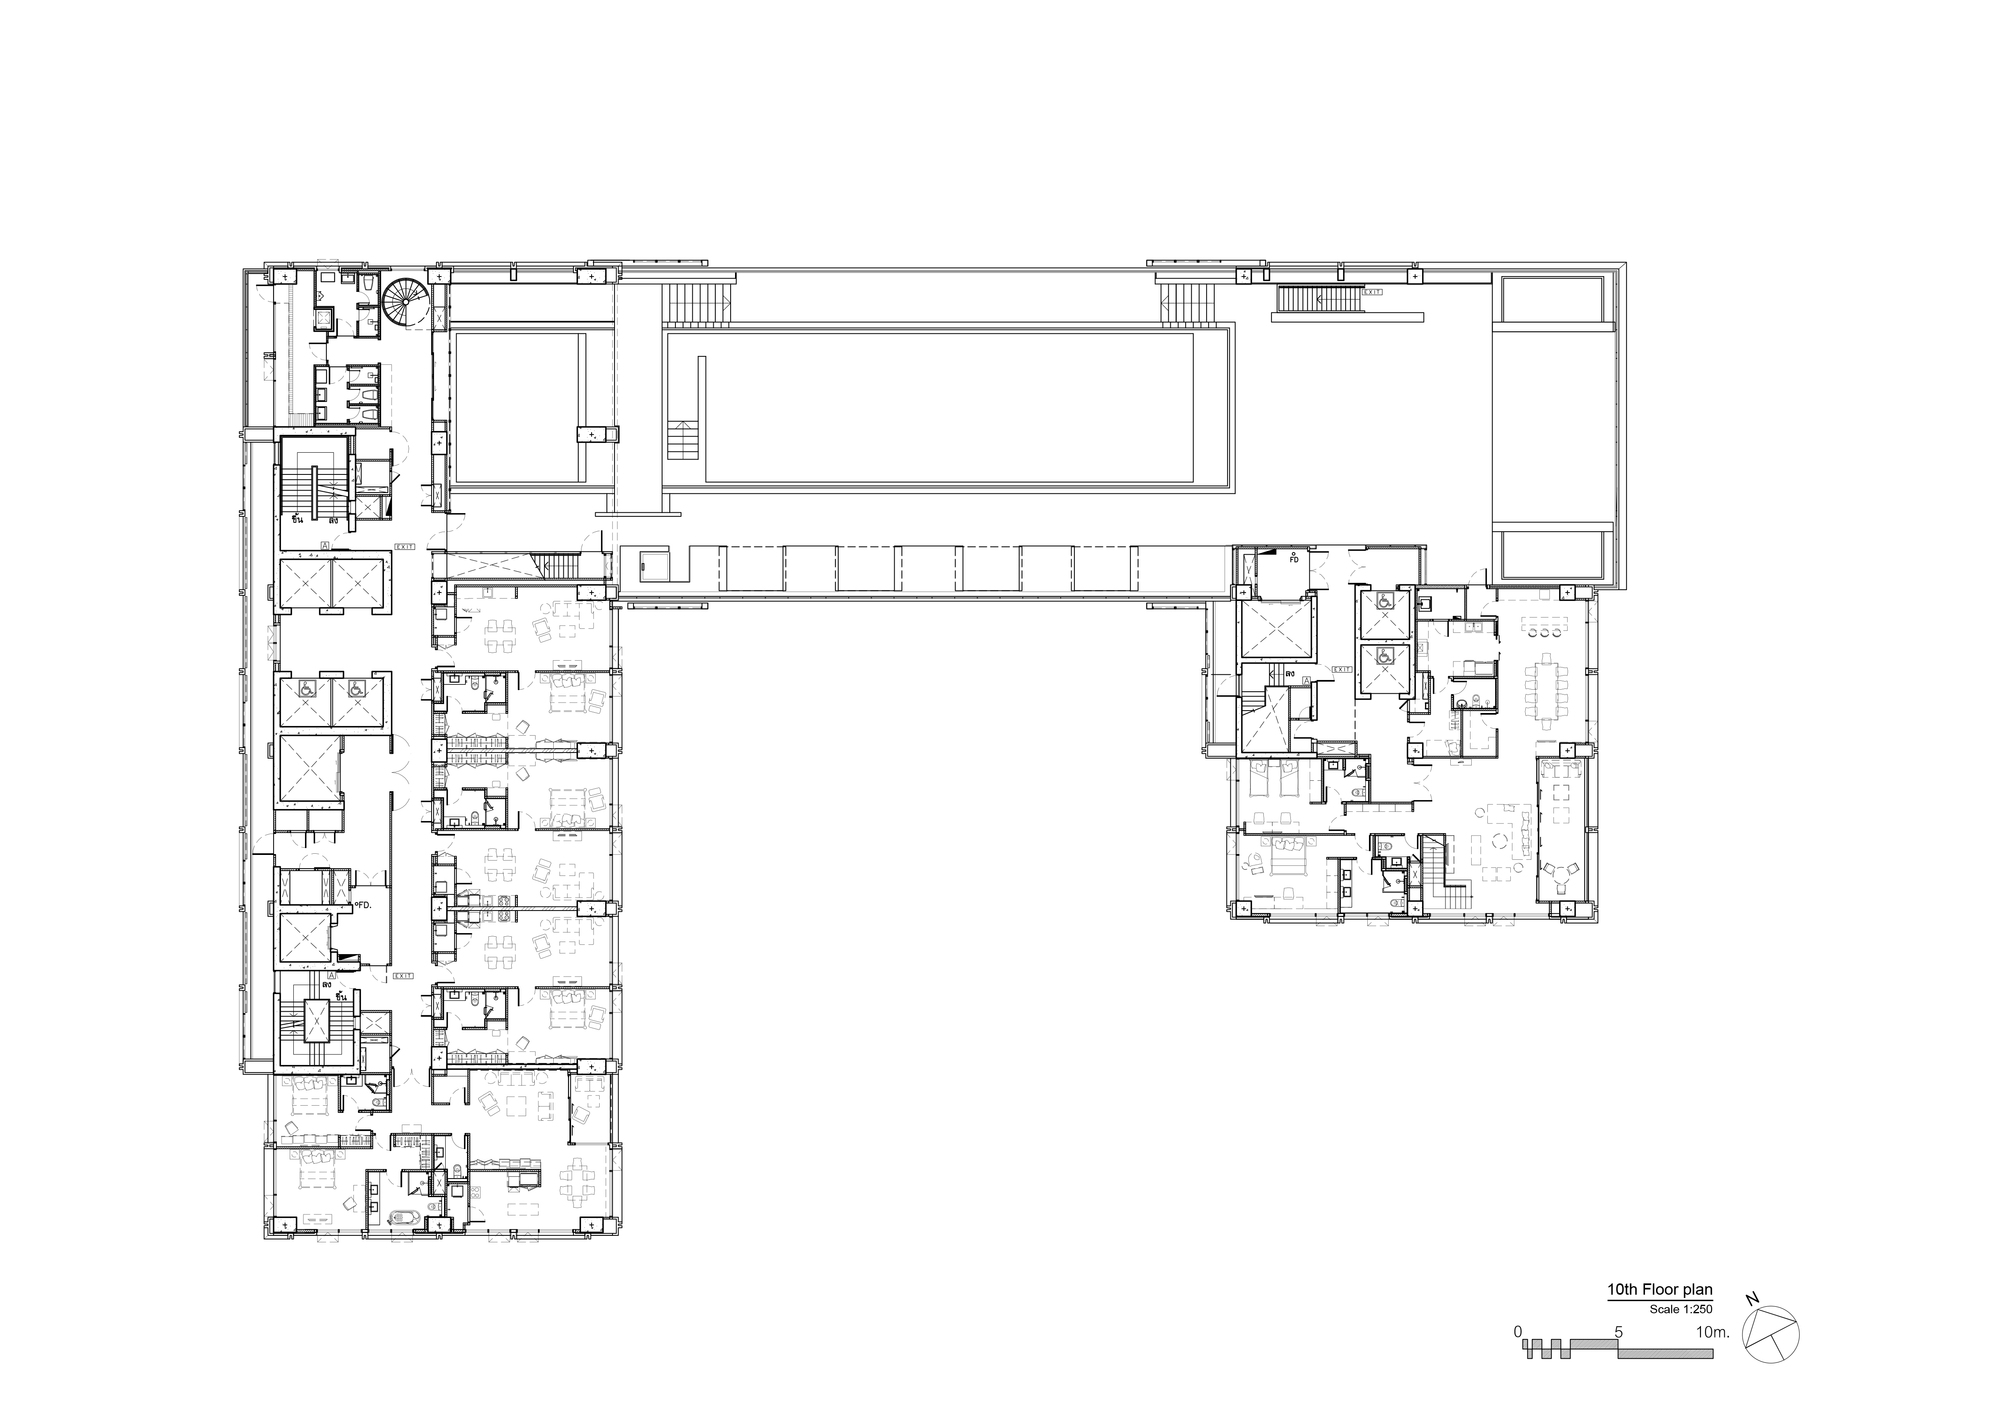 architect floor plans gallery of sindhorn residence plan architect 23 10148